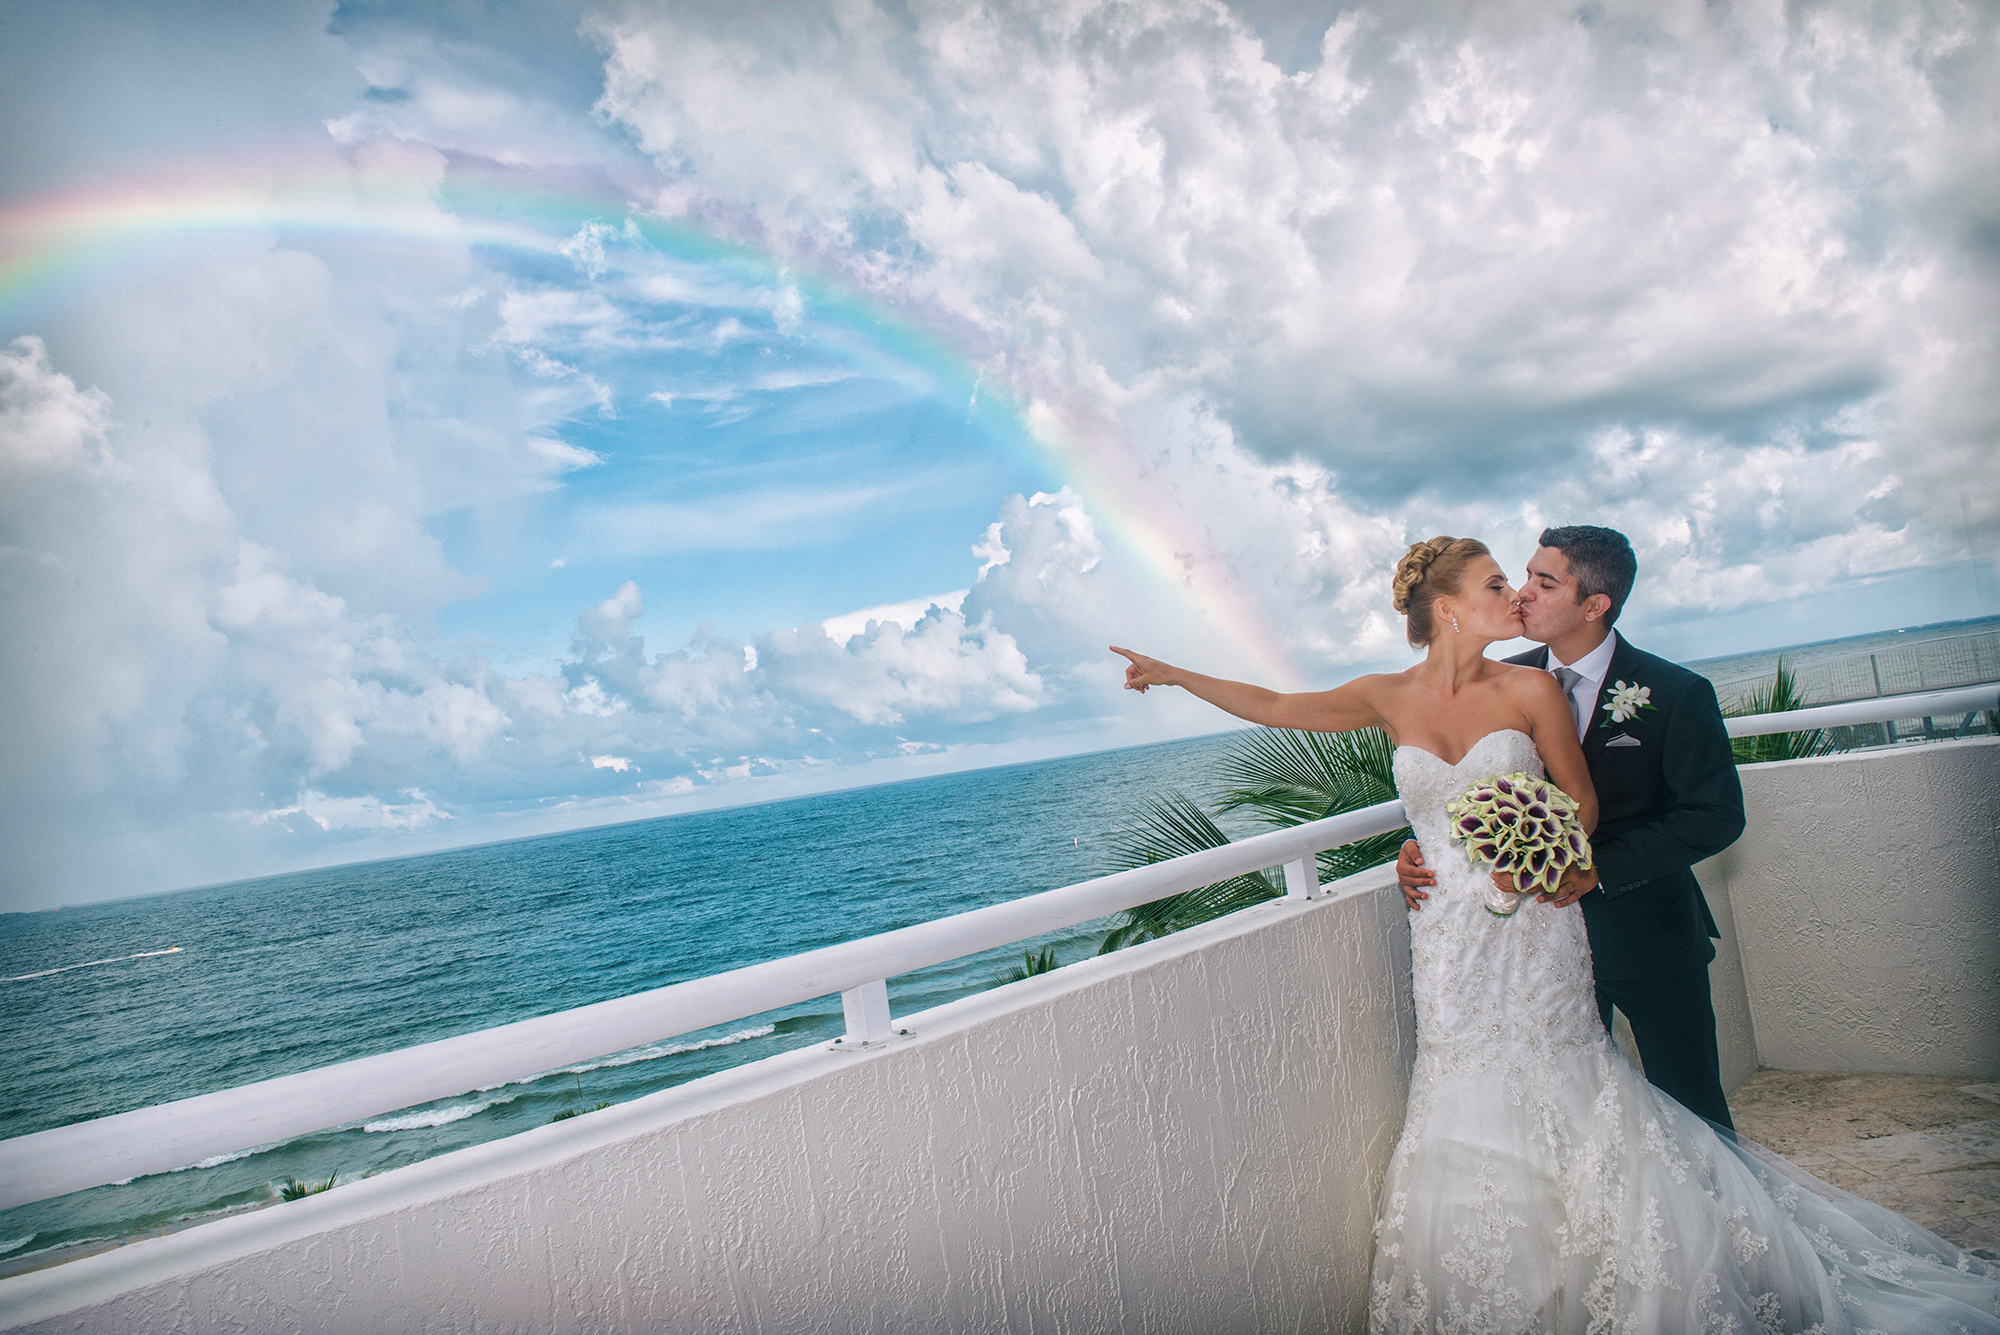 ritz-carlton-florida-wedding-jeffkolodny-photography-25